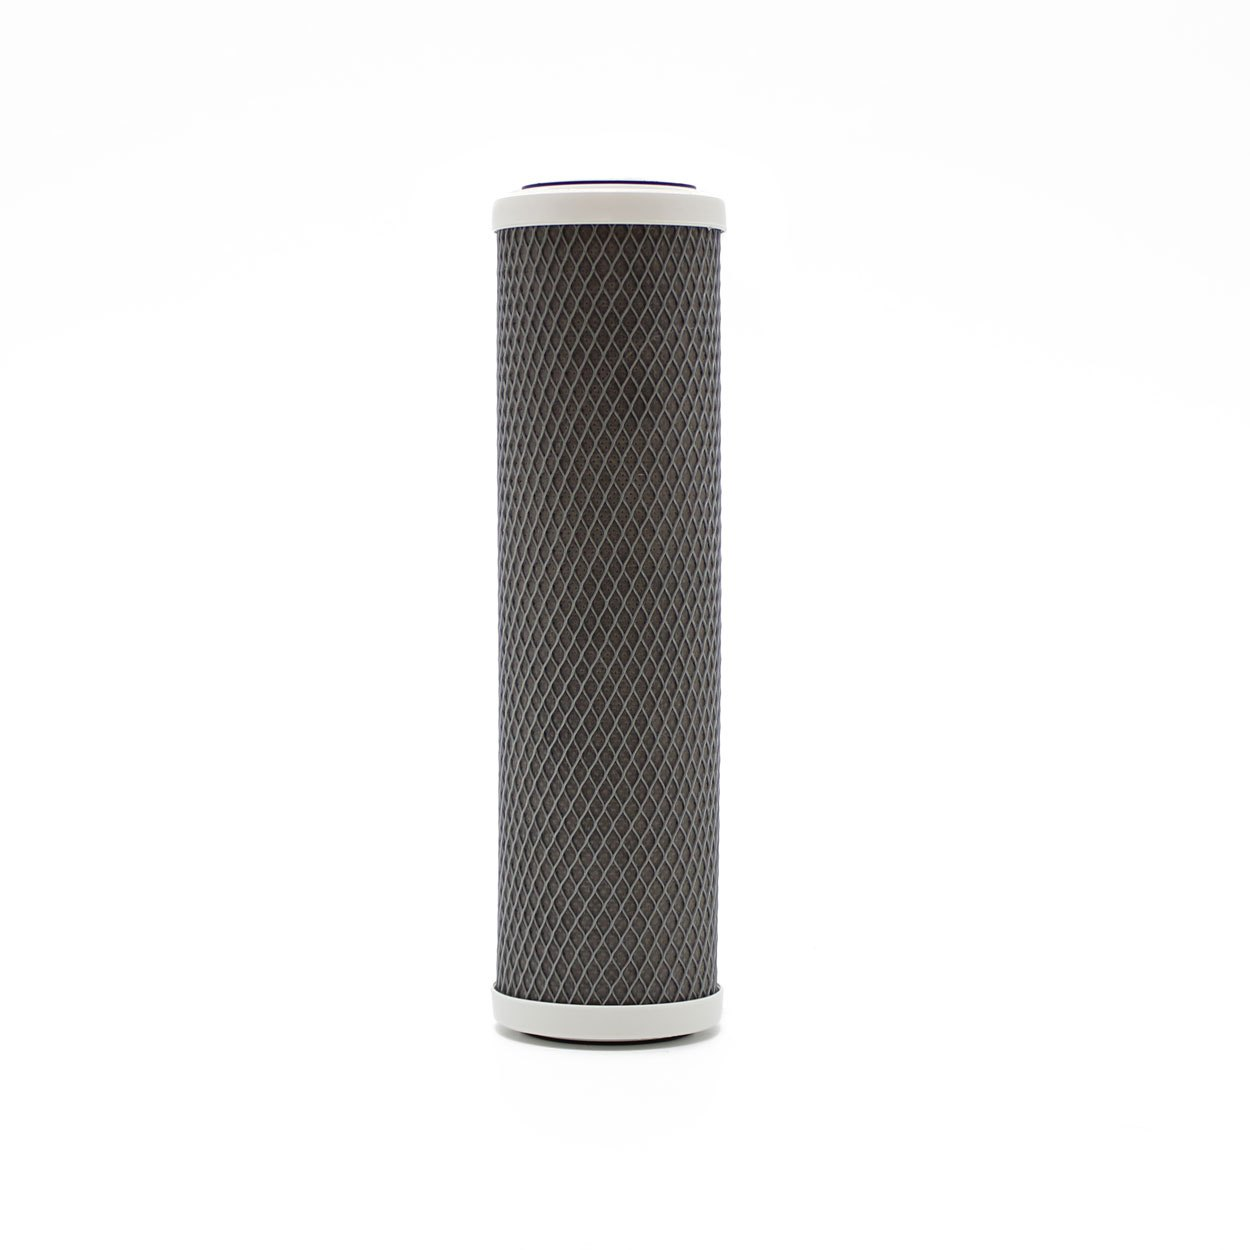 GTS1-10 Silver Impregnated Carbon Block Water Filter 1 Micron